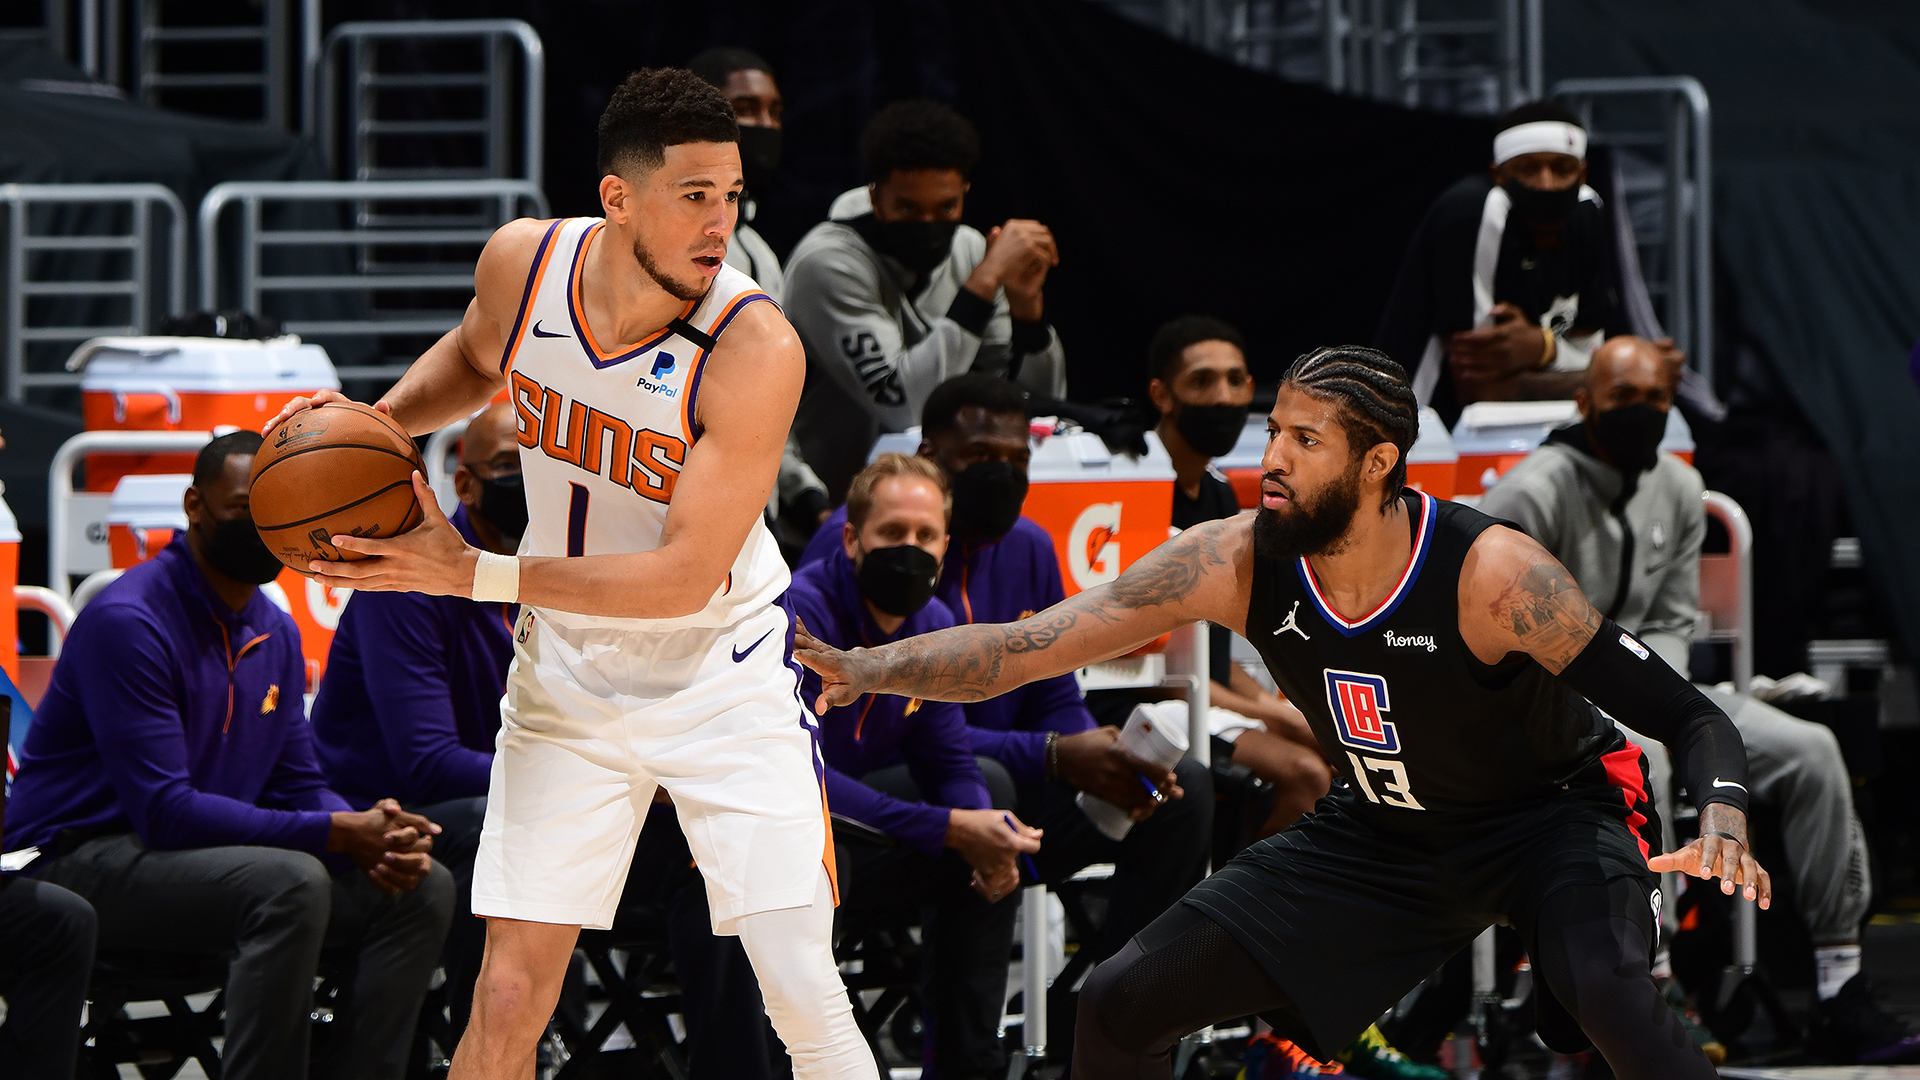 Surging Suns, confident Clippers clash in West finals